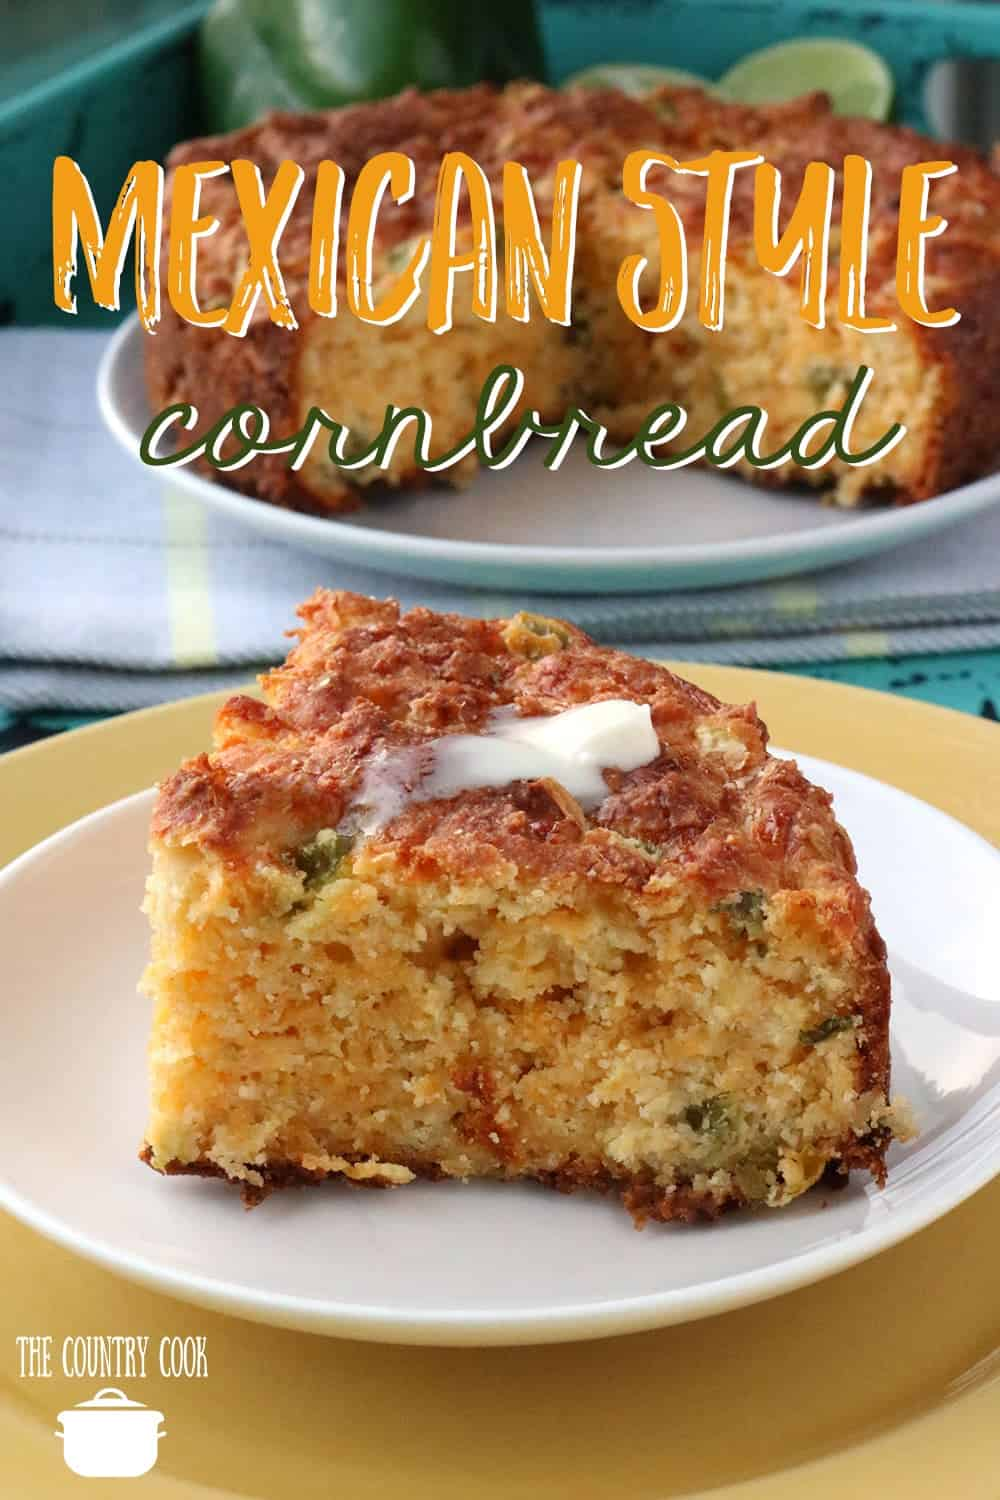 Mexican-Style Cornbread recipe from The Country Cook